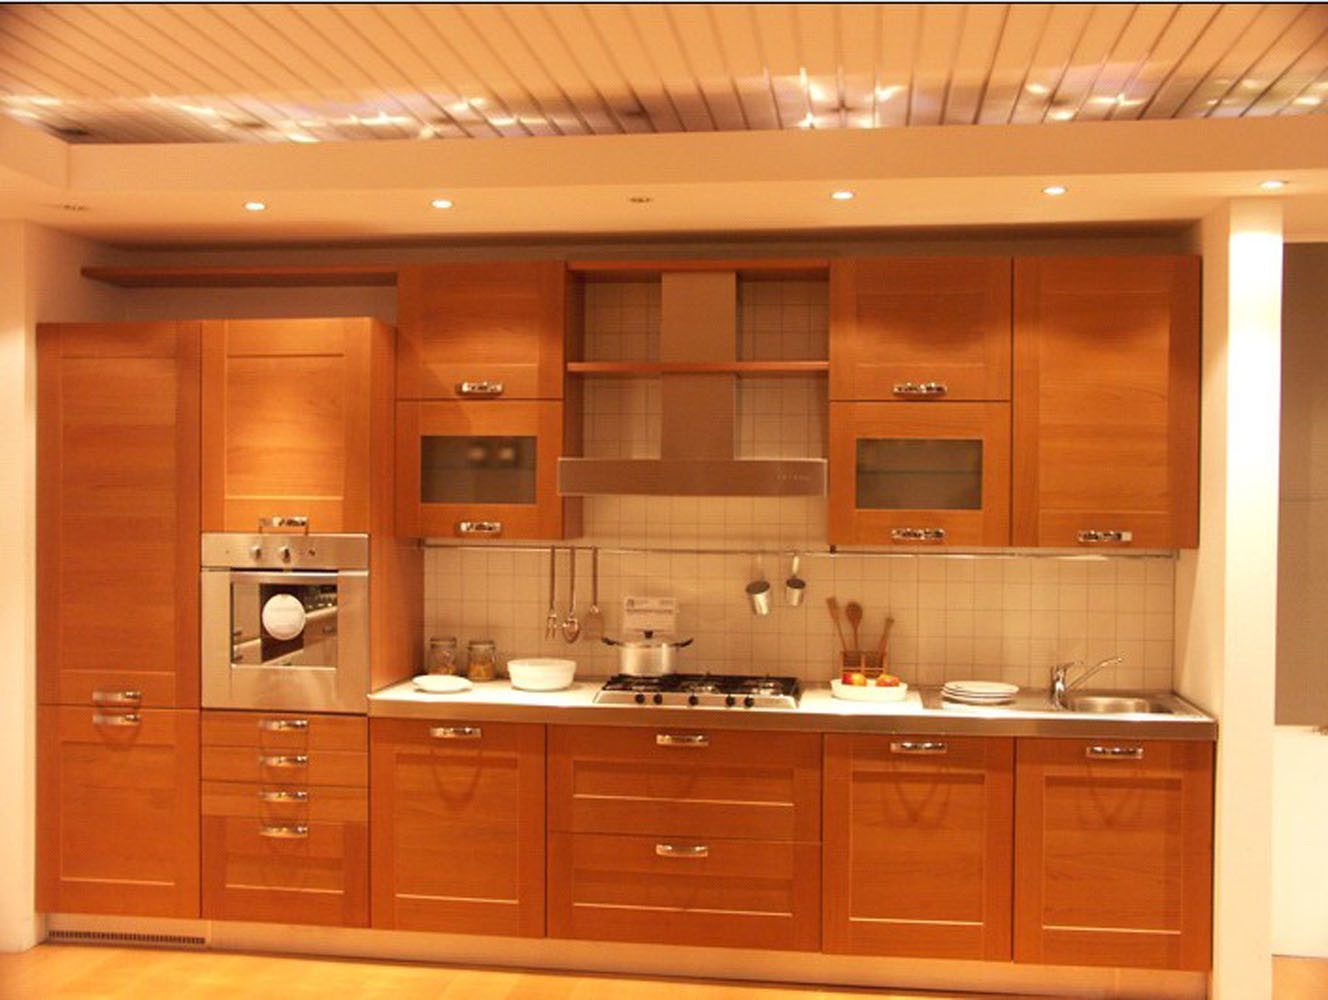 Shaker style kitchen afreakatheart for Shaker kitchen cabinets